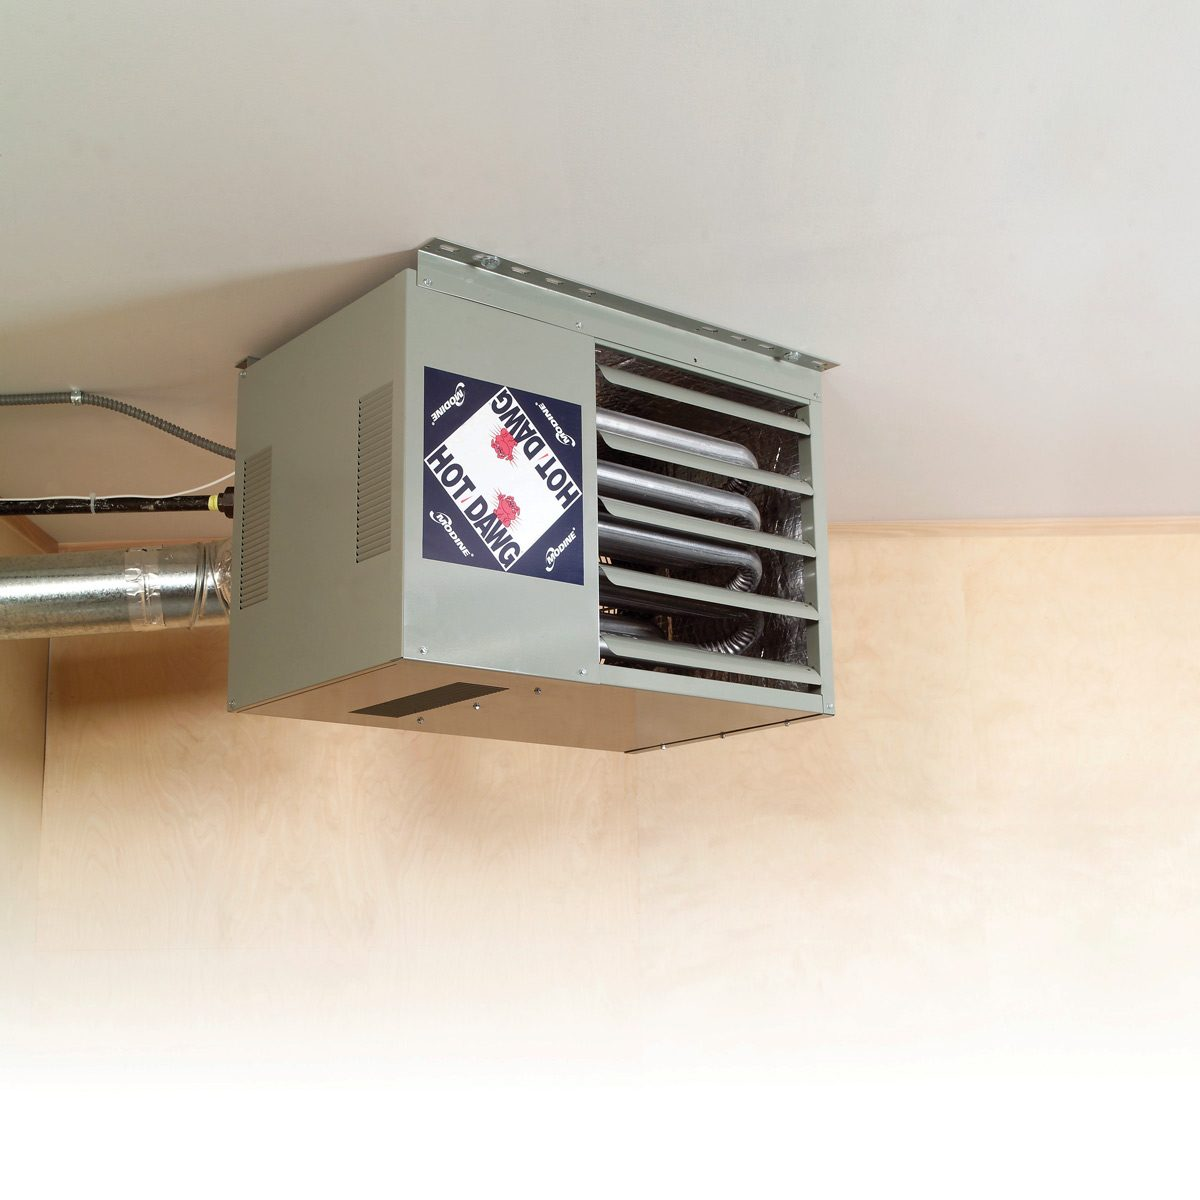 Garage Attic Air Conditioner 12 Best Ways To Heat A Garage In The Winter The Family Handyman